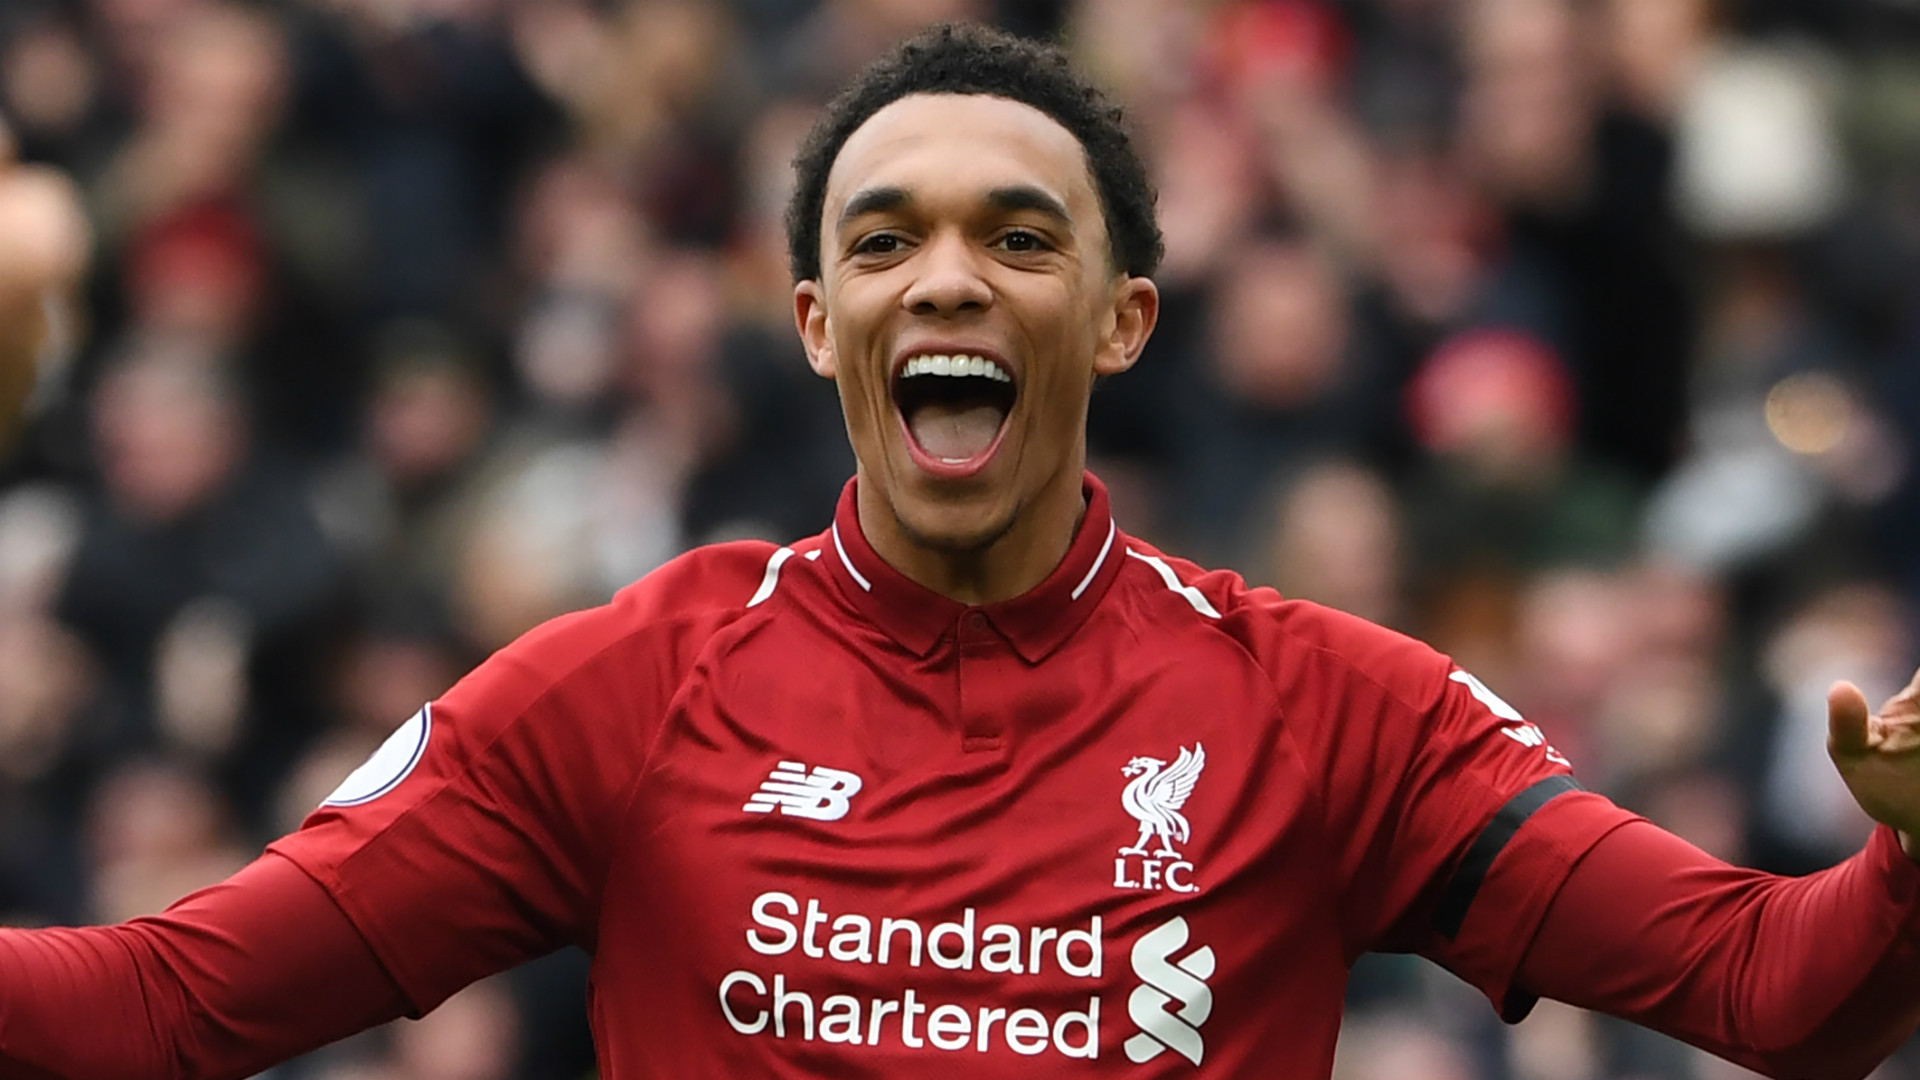 England told to play Alexander-Arnold in midfield by former Liverpool star